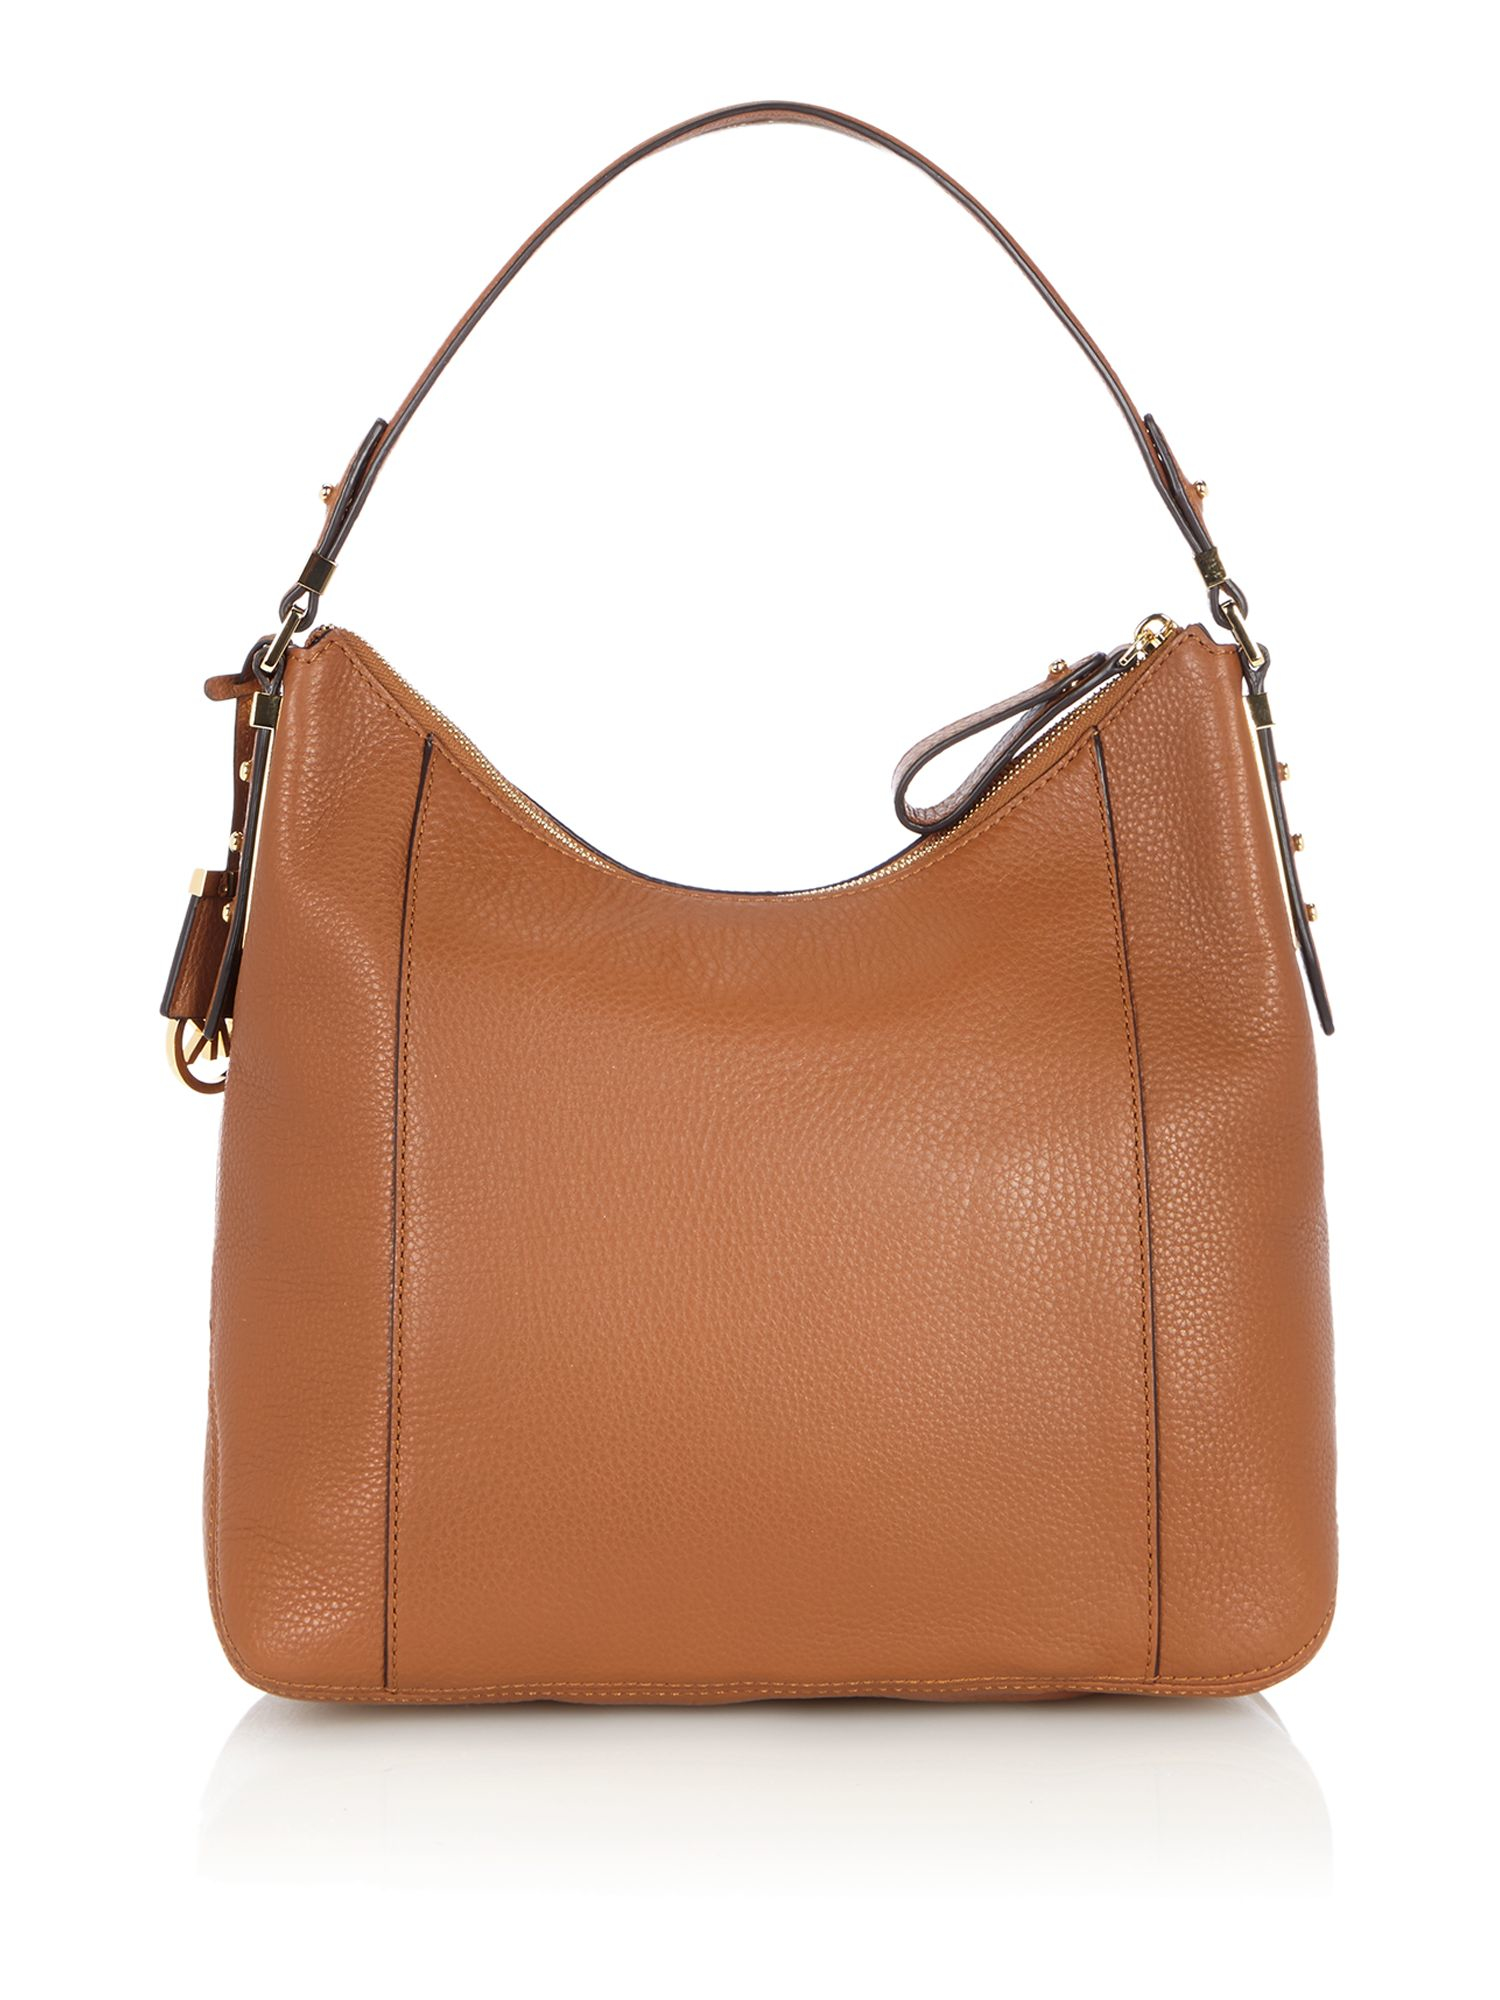 michael kors bowery tan large hobo bag in brown tan lyst. Black Bedroom Furniture Sets. Home Design Ideas